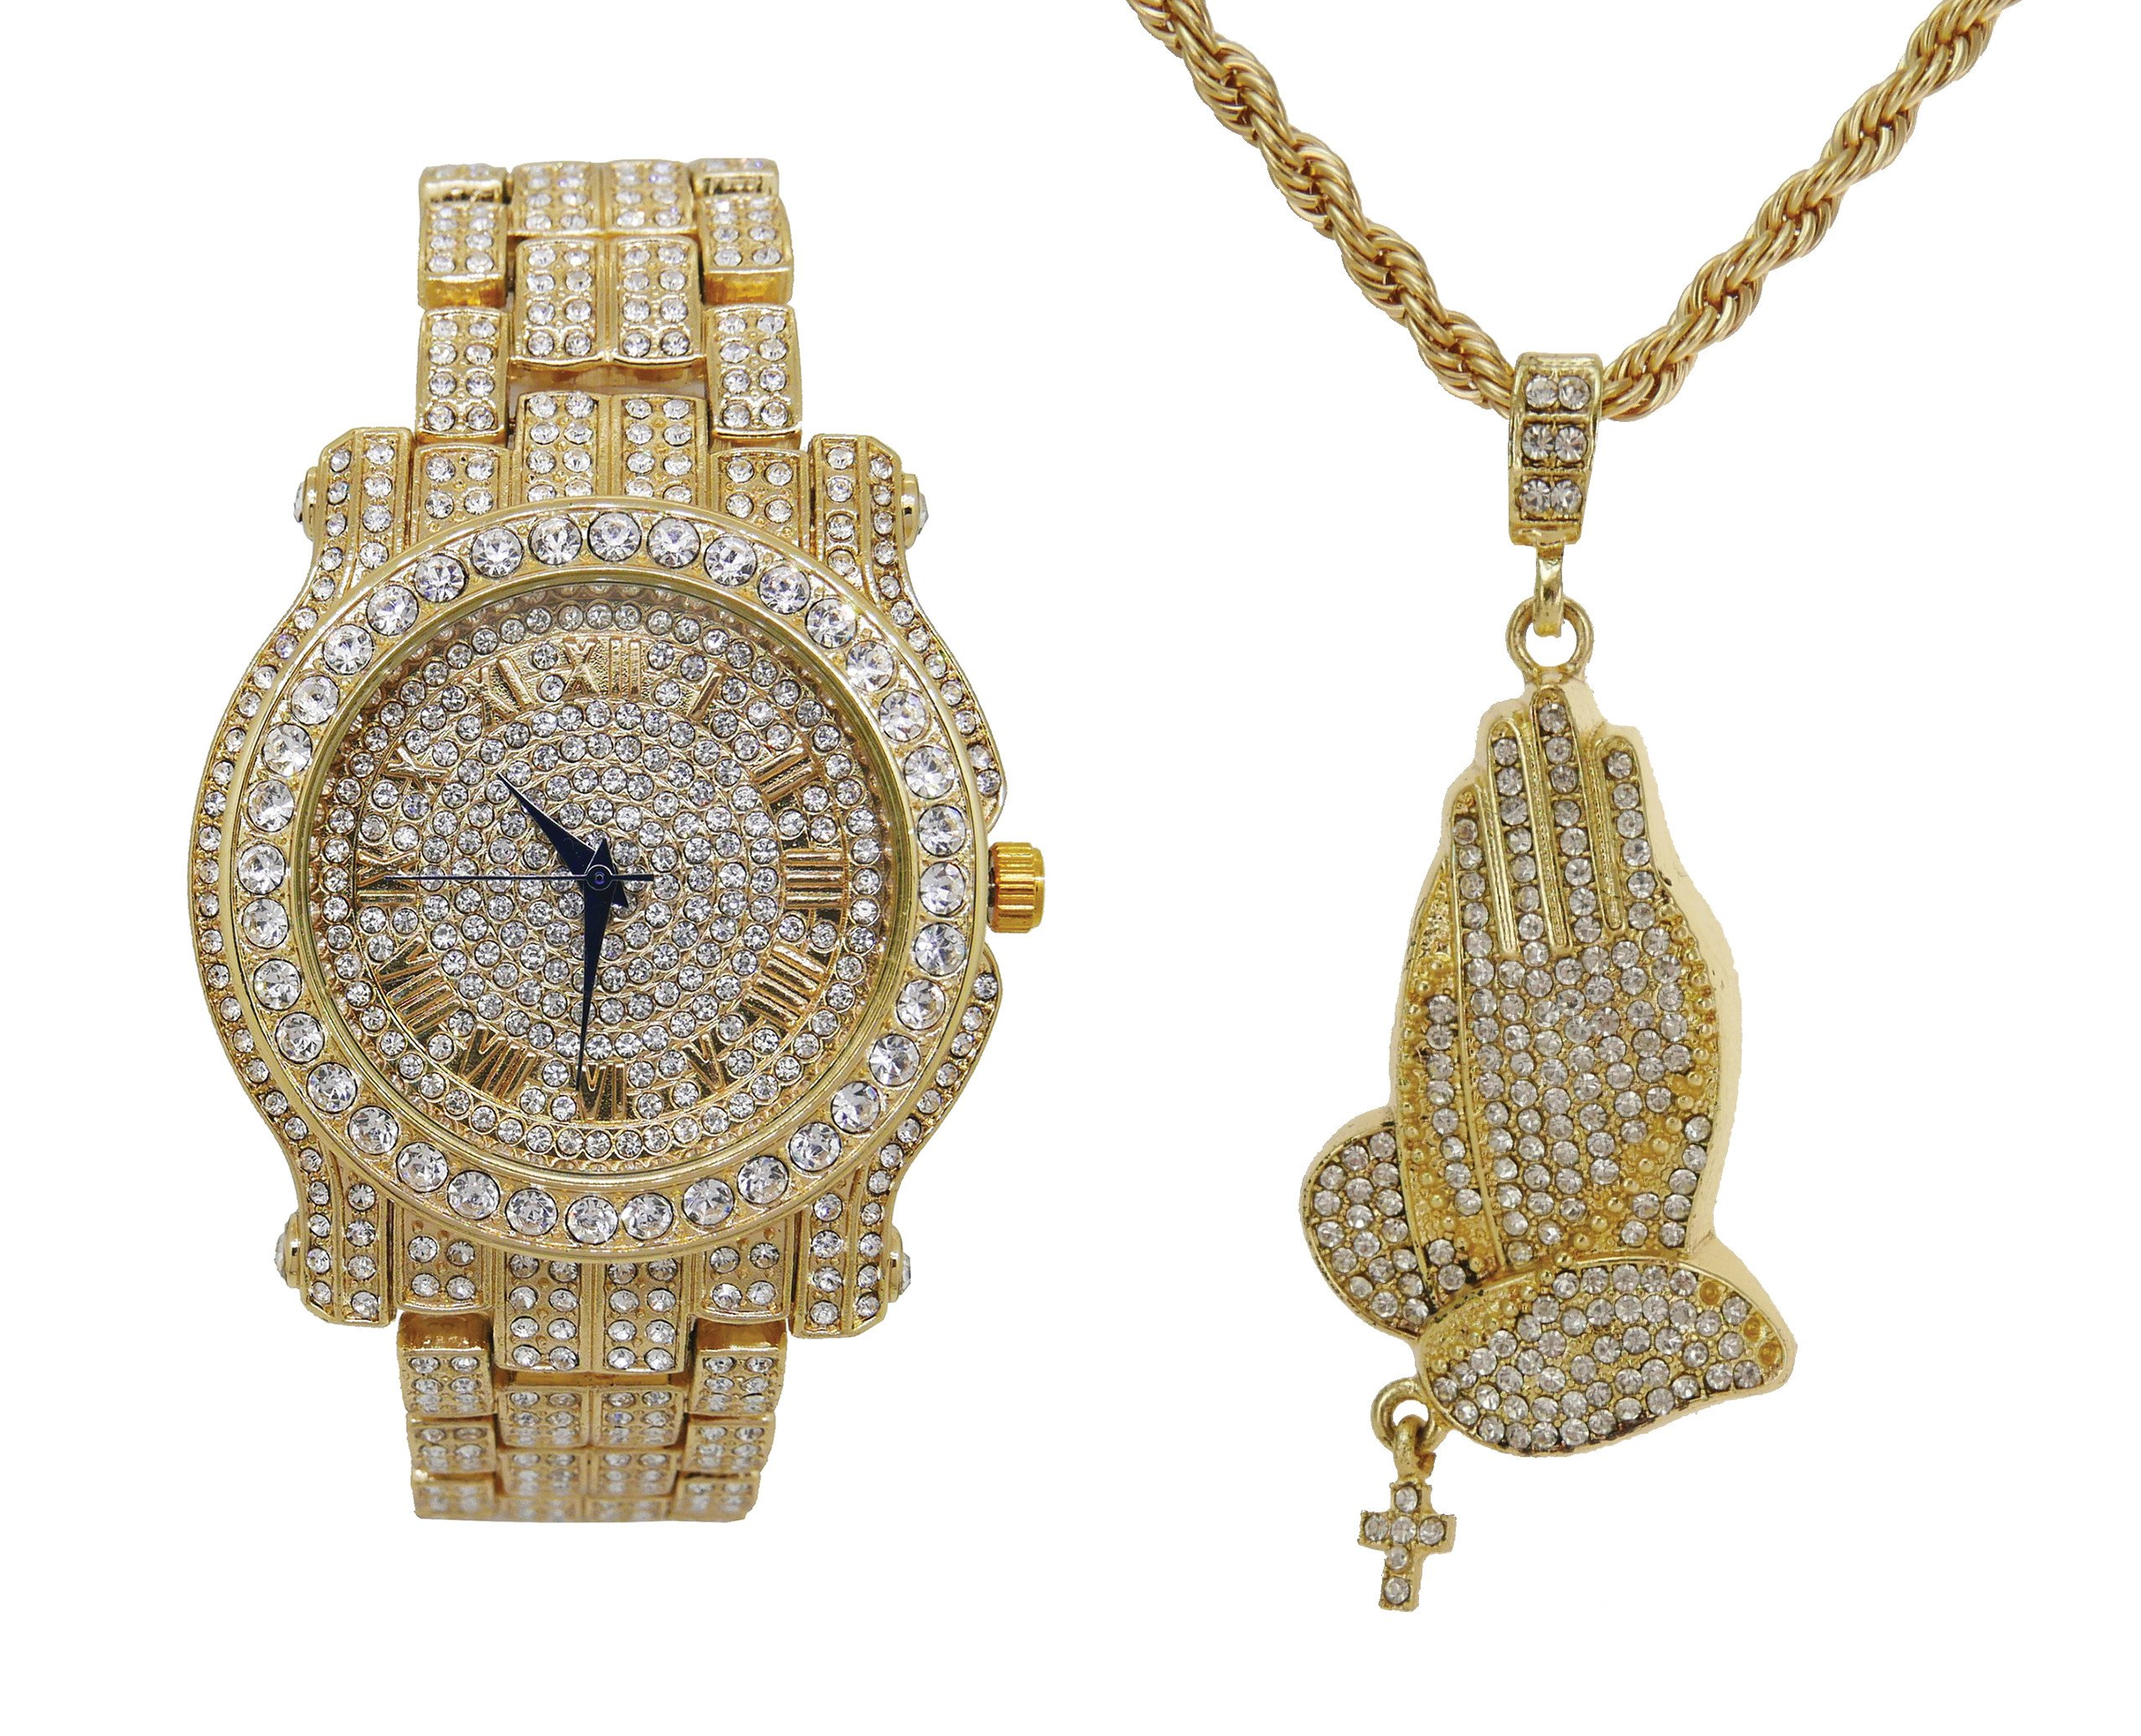 Bling-ed Out Rapper Fashion - Praying Hands Ice'd Out Pendent with Gold Tone Necklace with Fully Blinged Out Luxurious Gold Watch!! - L0504-SSS41Gold